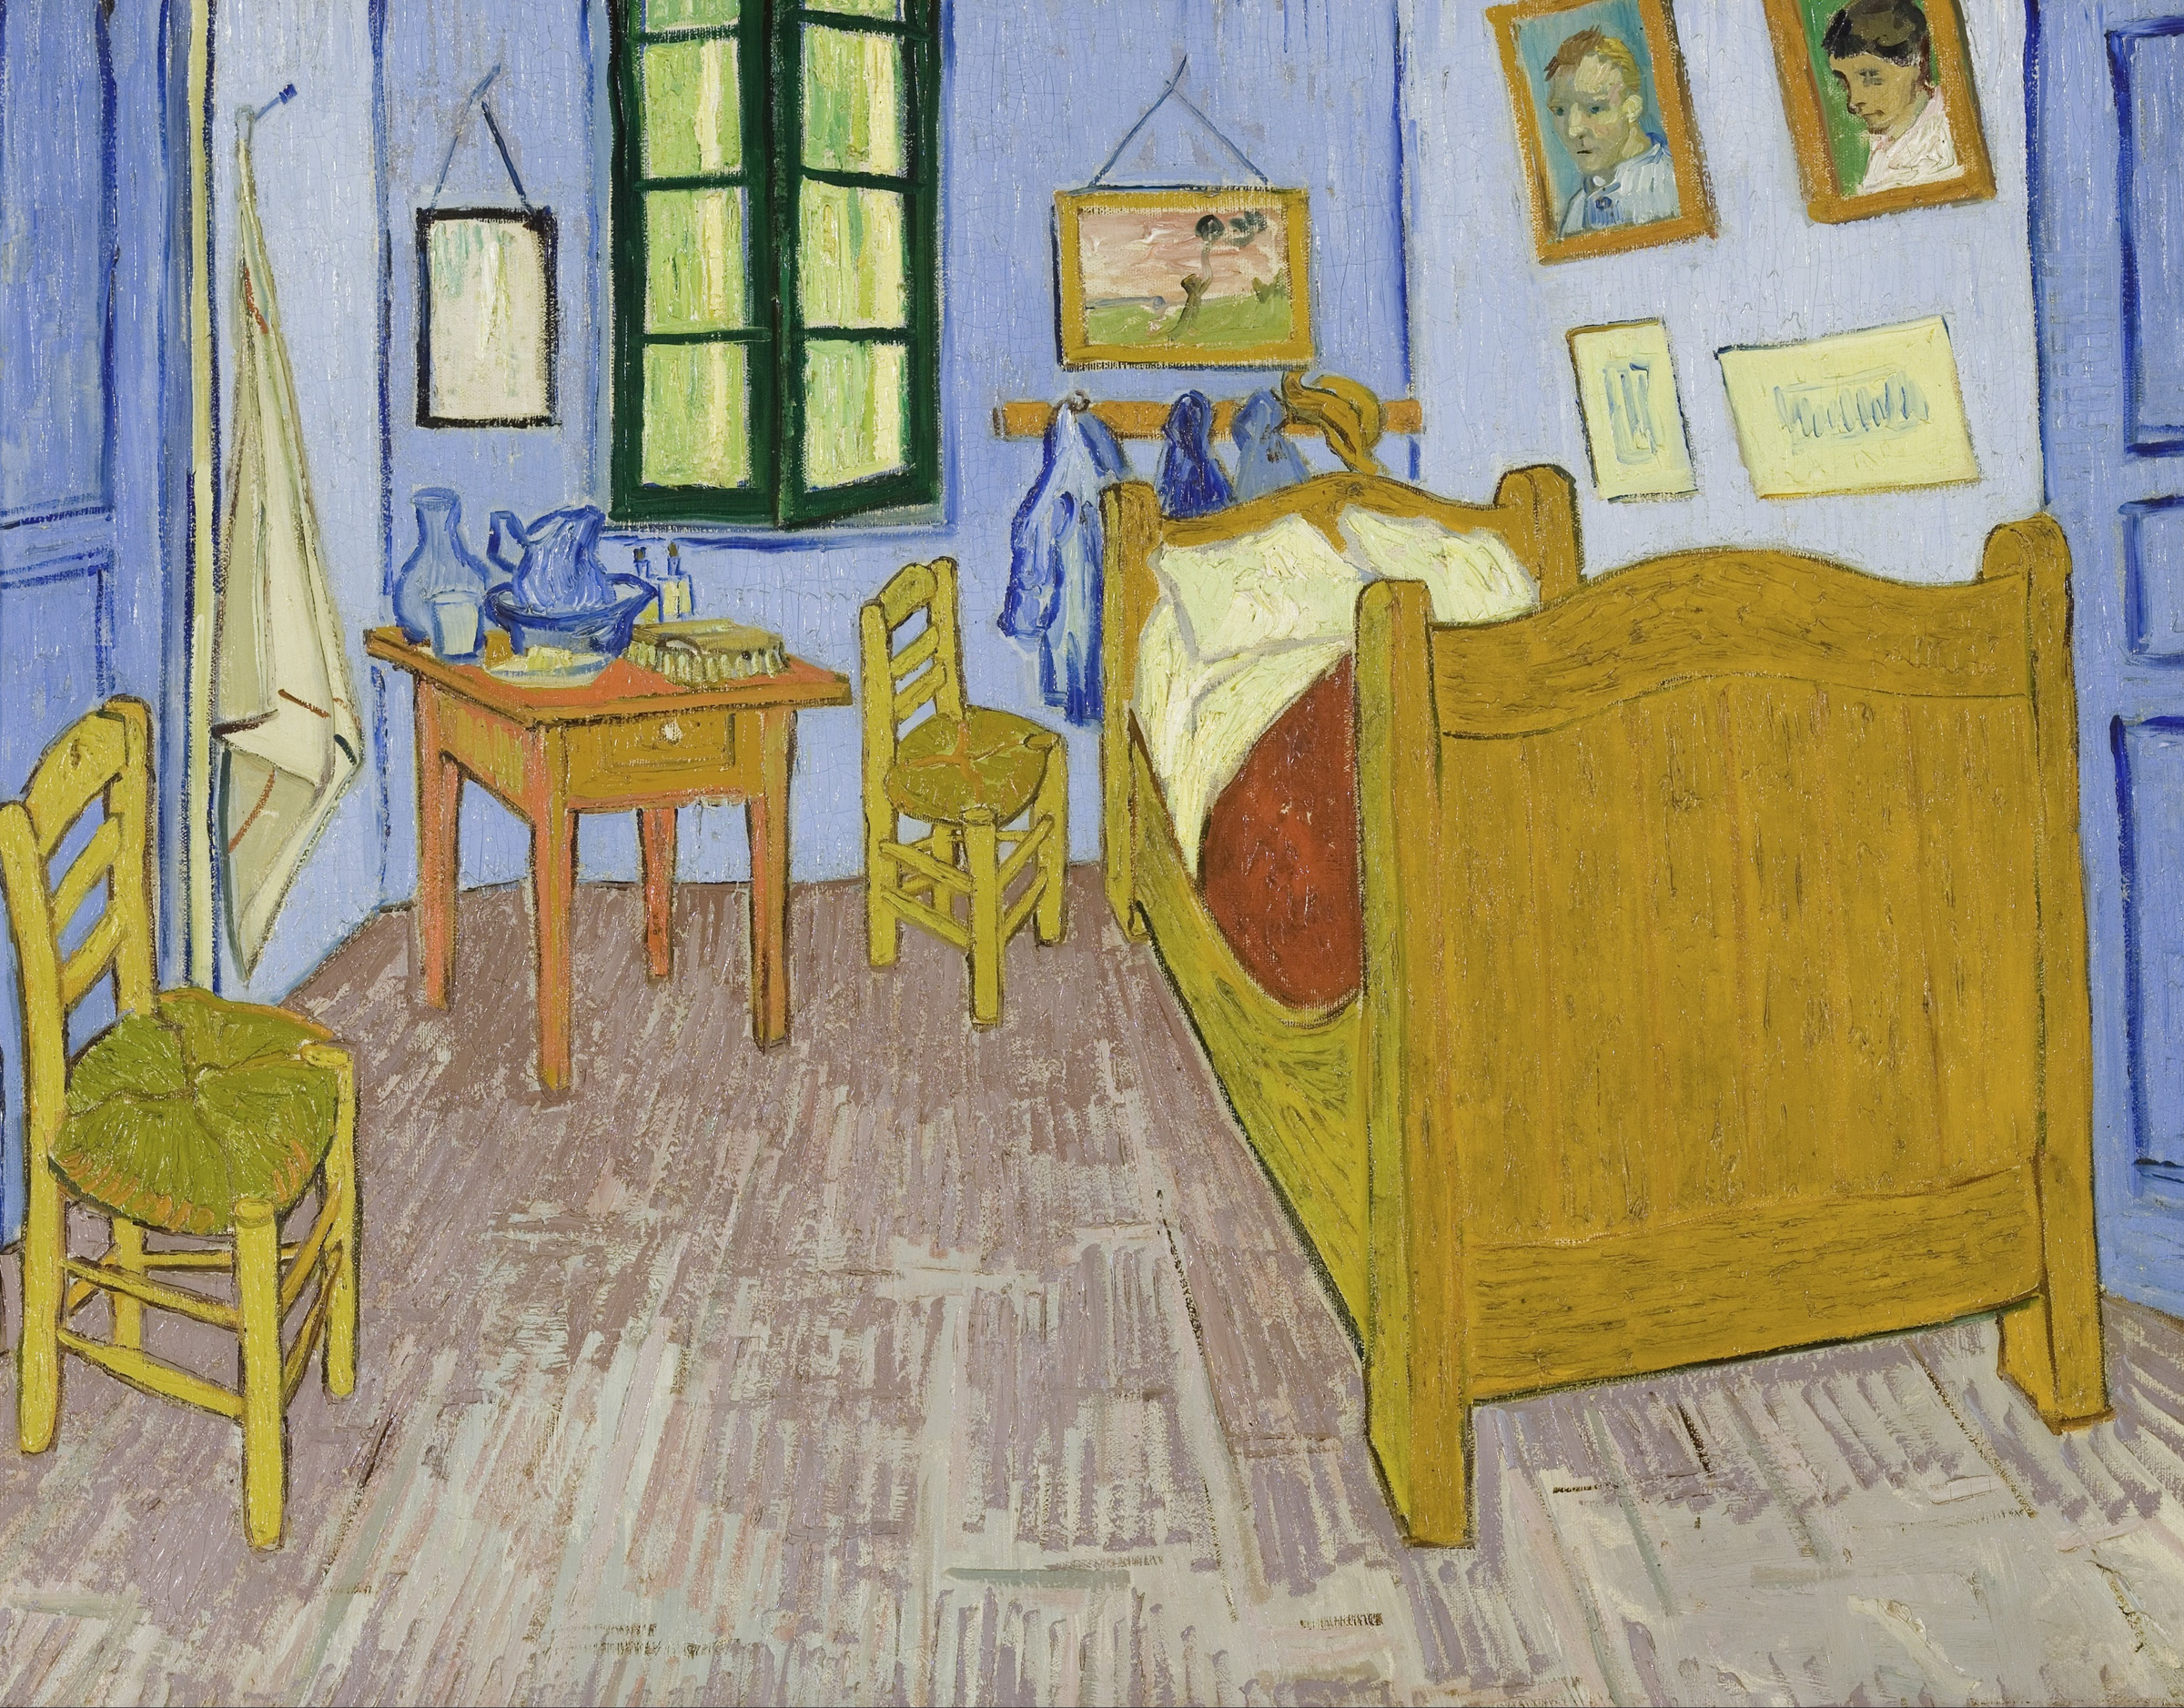 Class Artwork – My Bedroom Inspired by Van Gogh